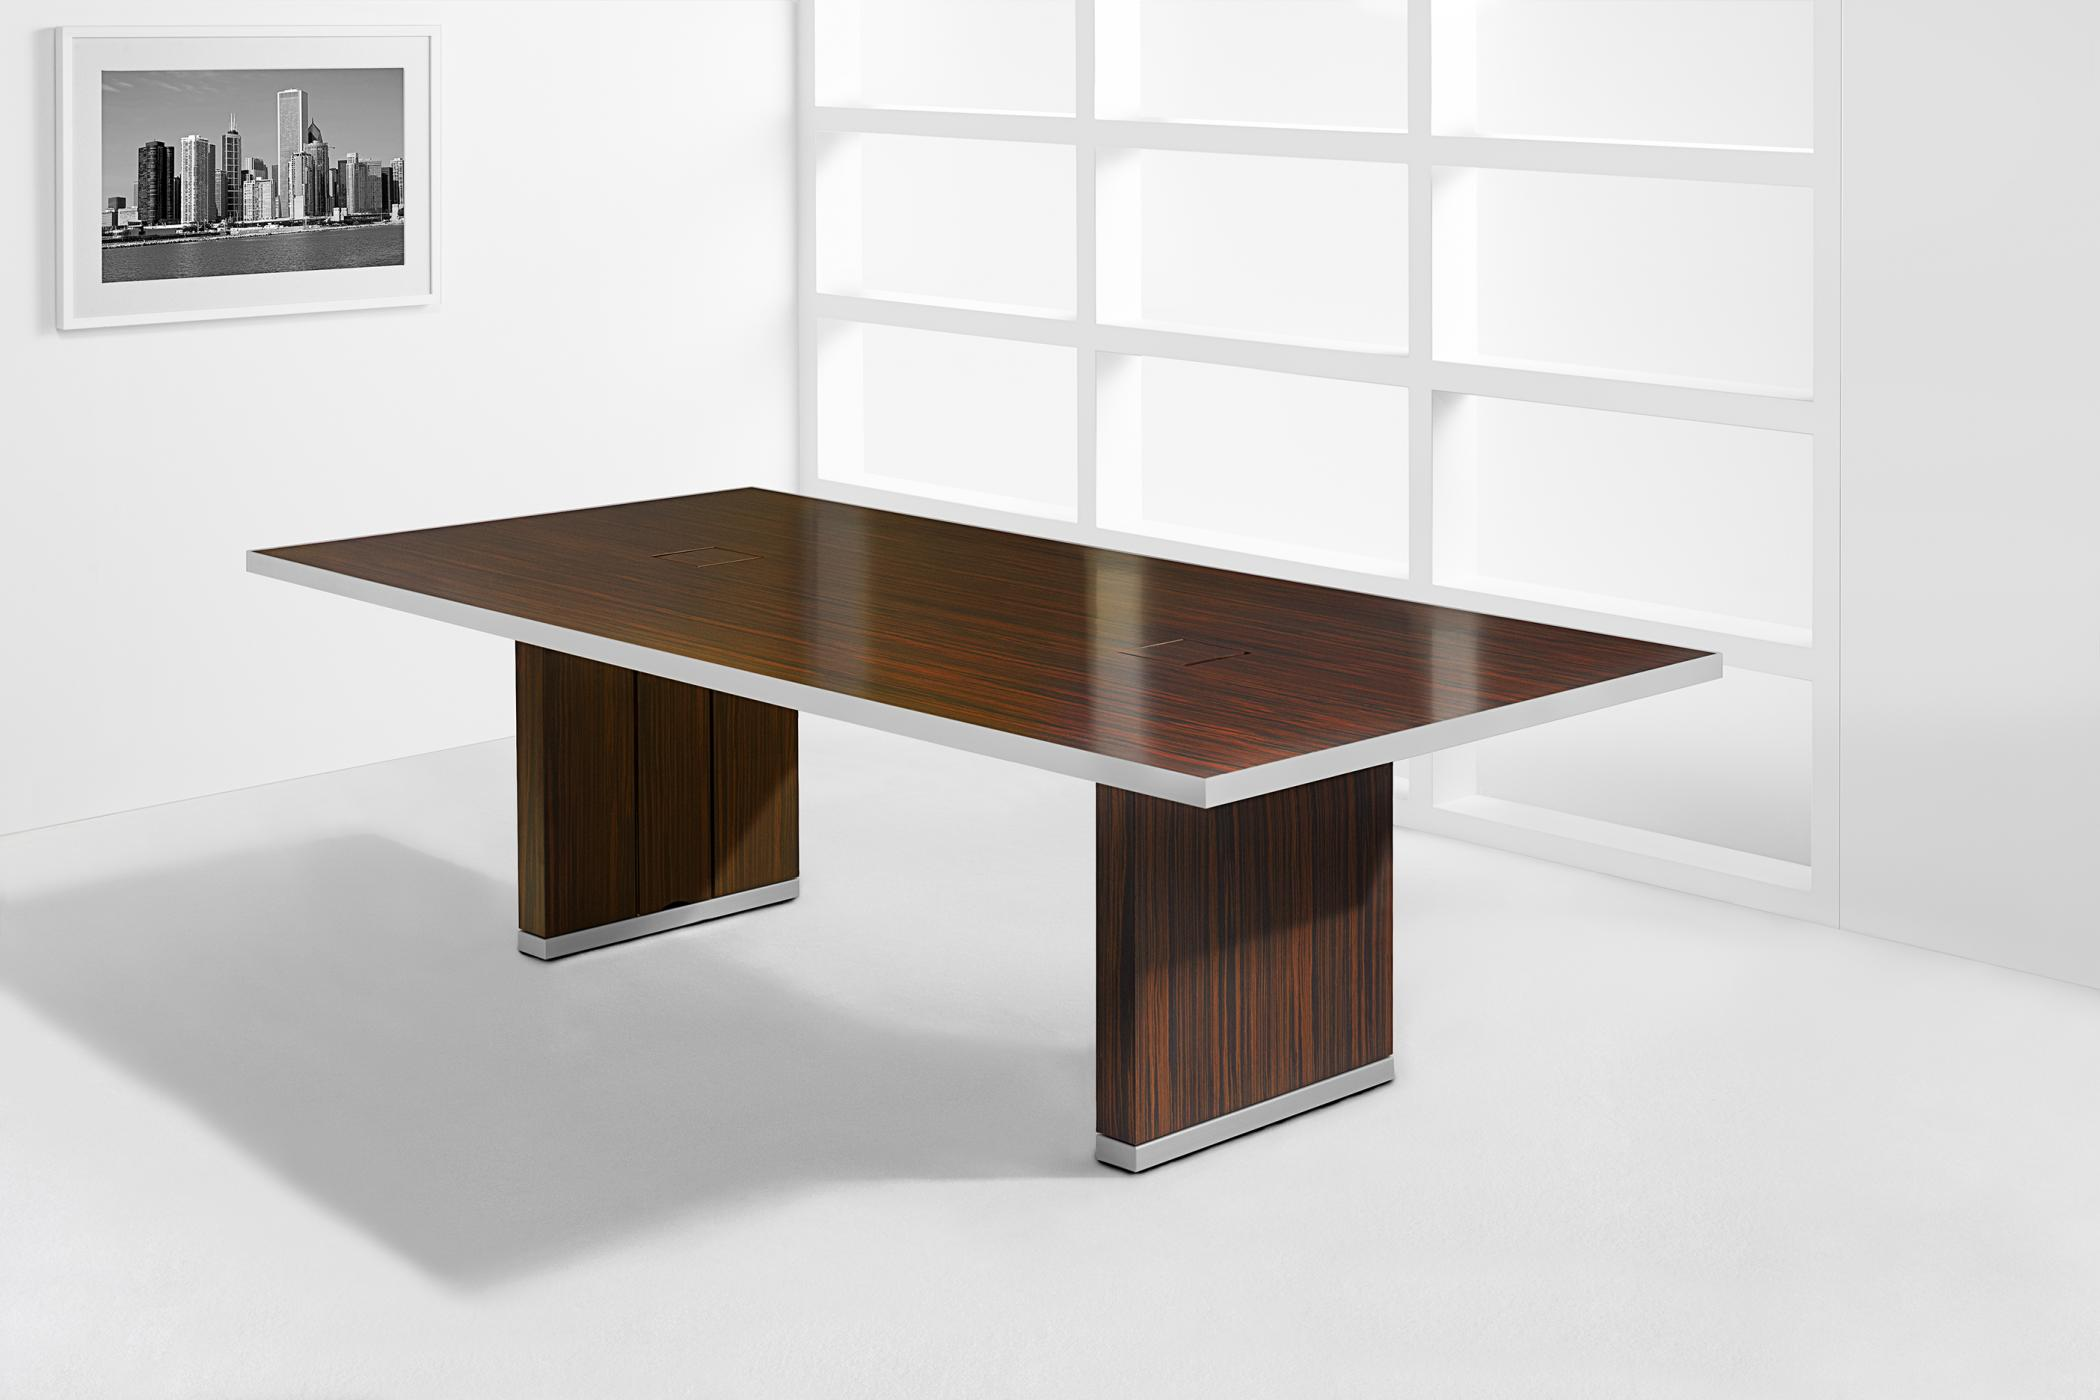 Mobile tables are available in any wood veneer and a range of metal finishes.